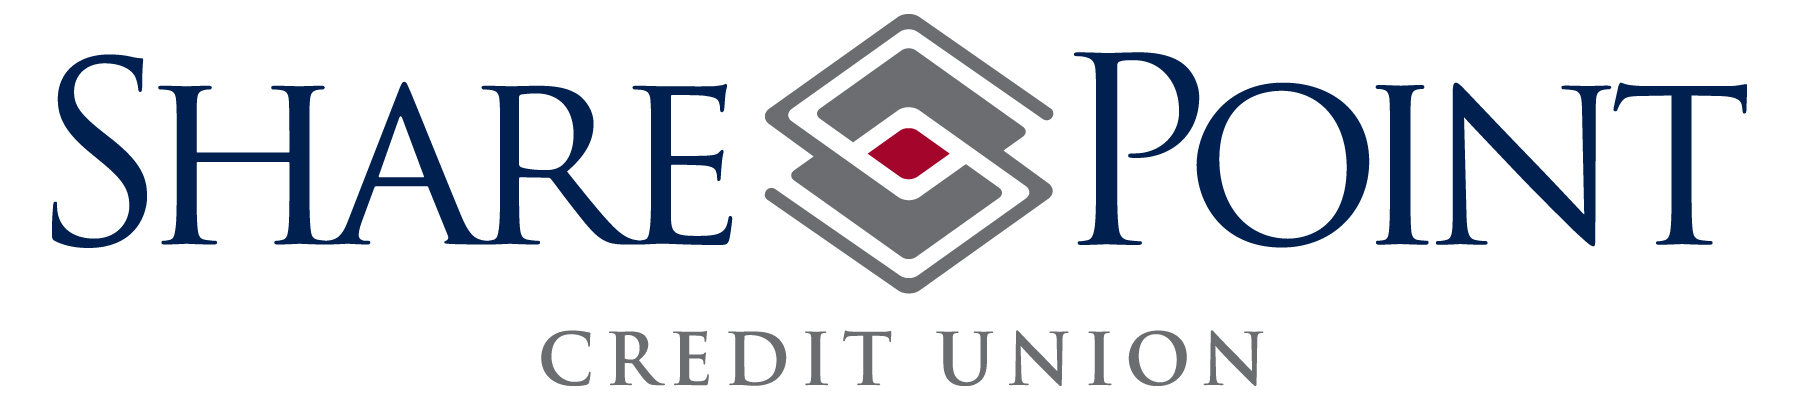 Share Point Credit Union